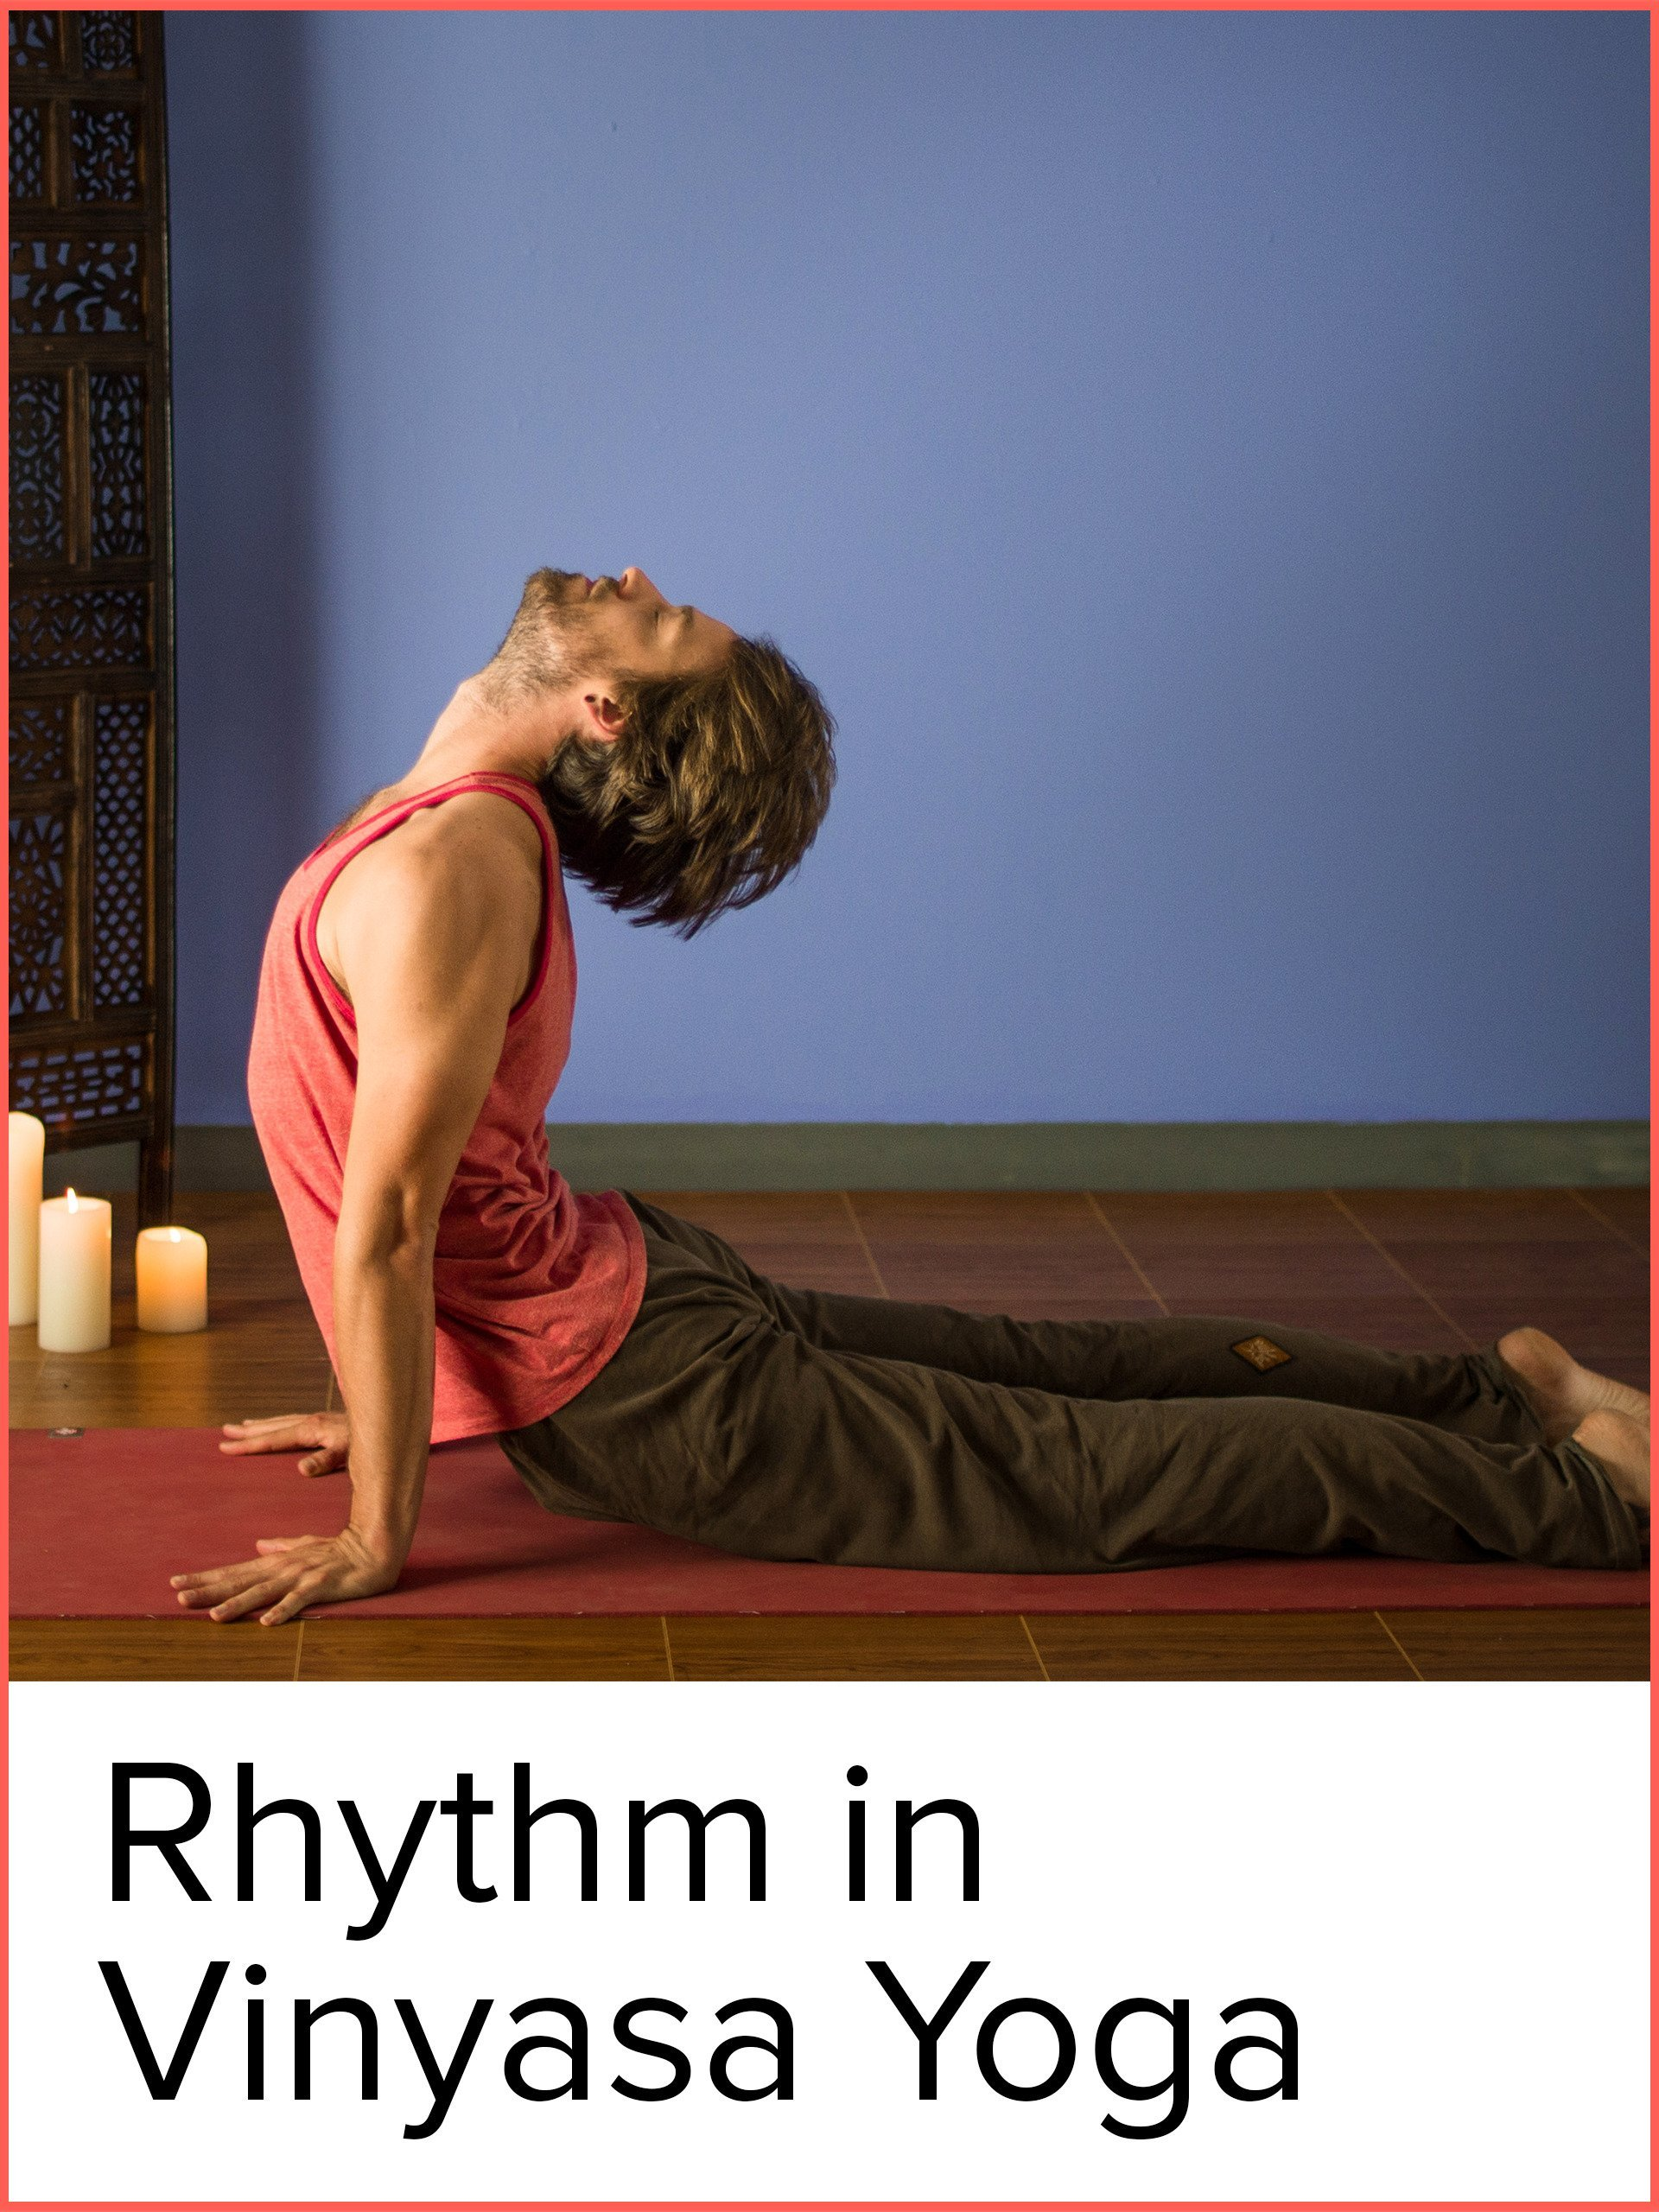 Watch Effortless Movement: Rhythm in Vinyasa Yoga | Prime Video